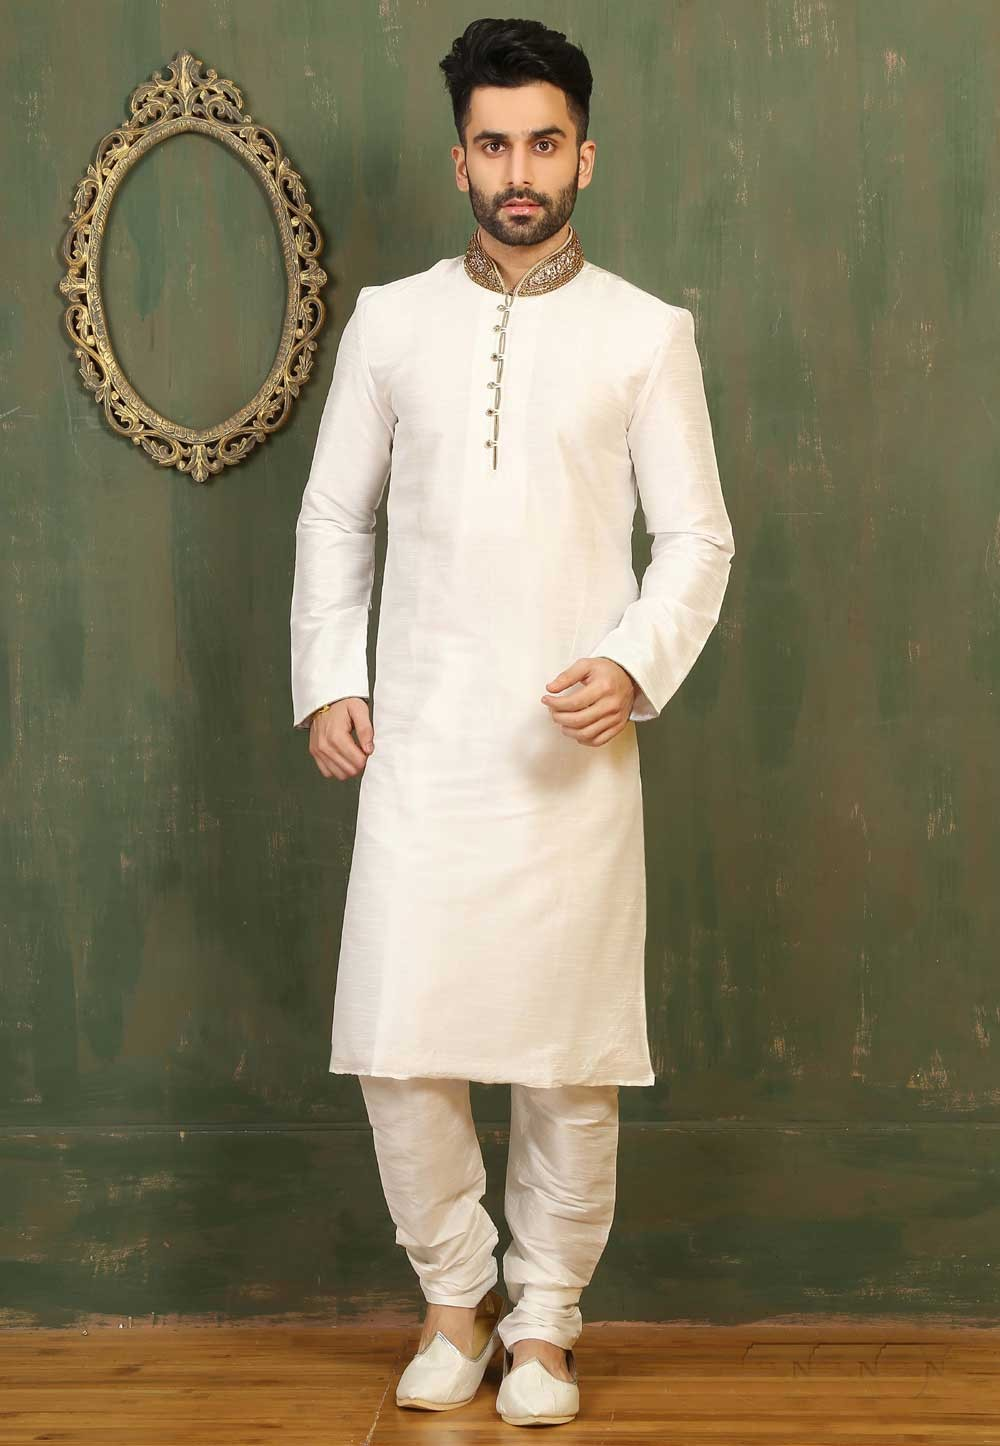 Off White Color Dupion Art Silk Readymade Kurta Pajama For Men's